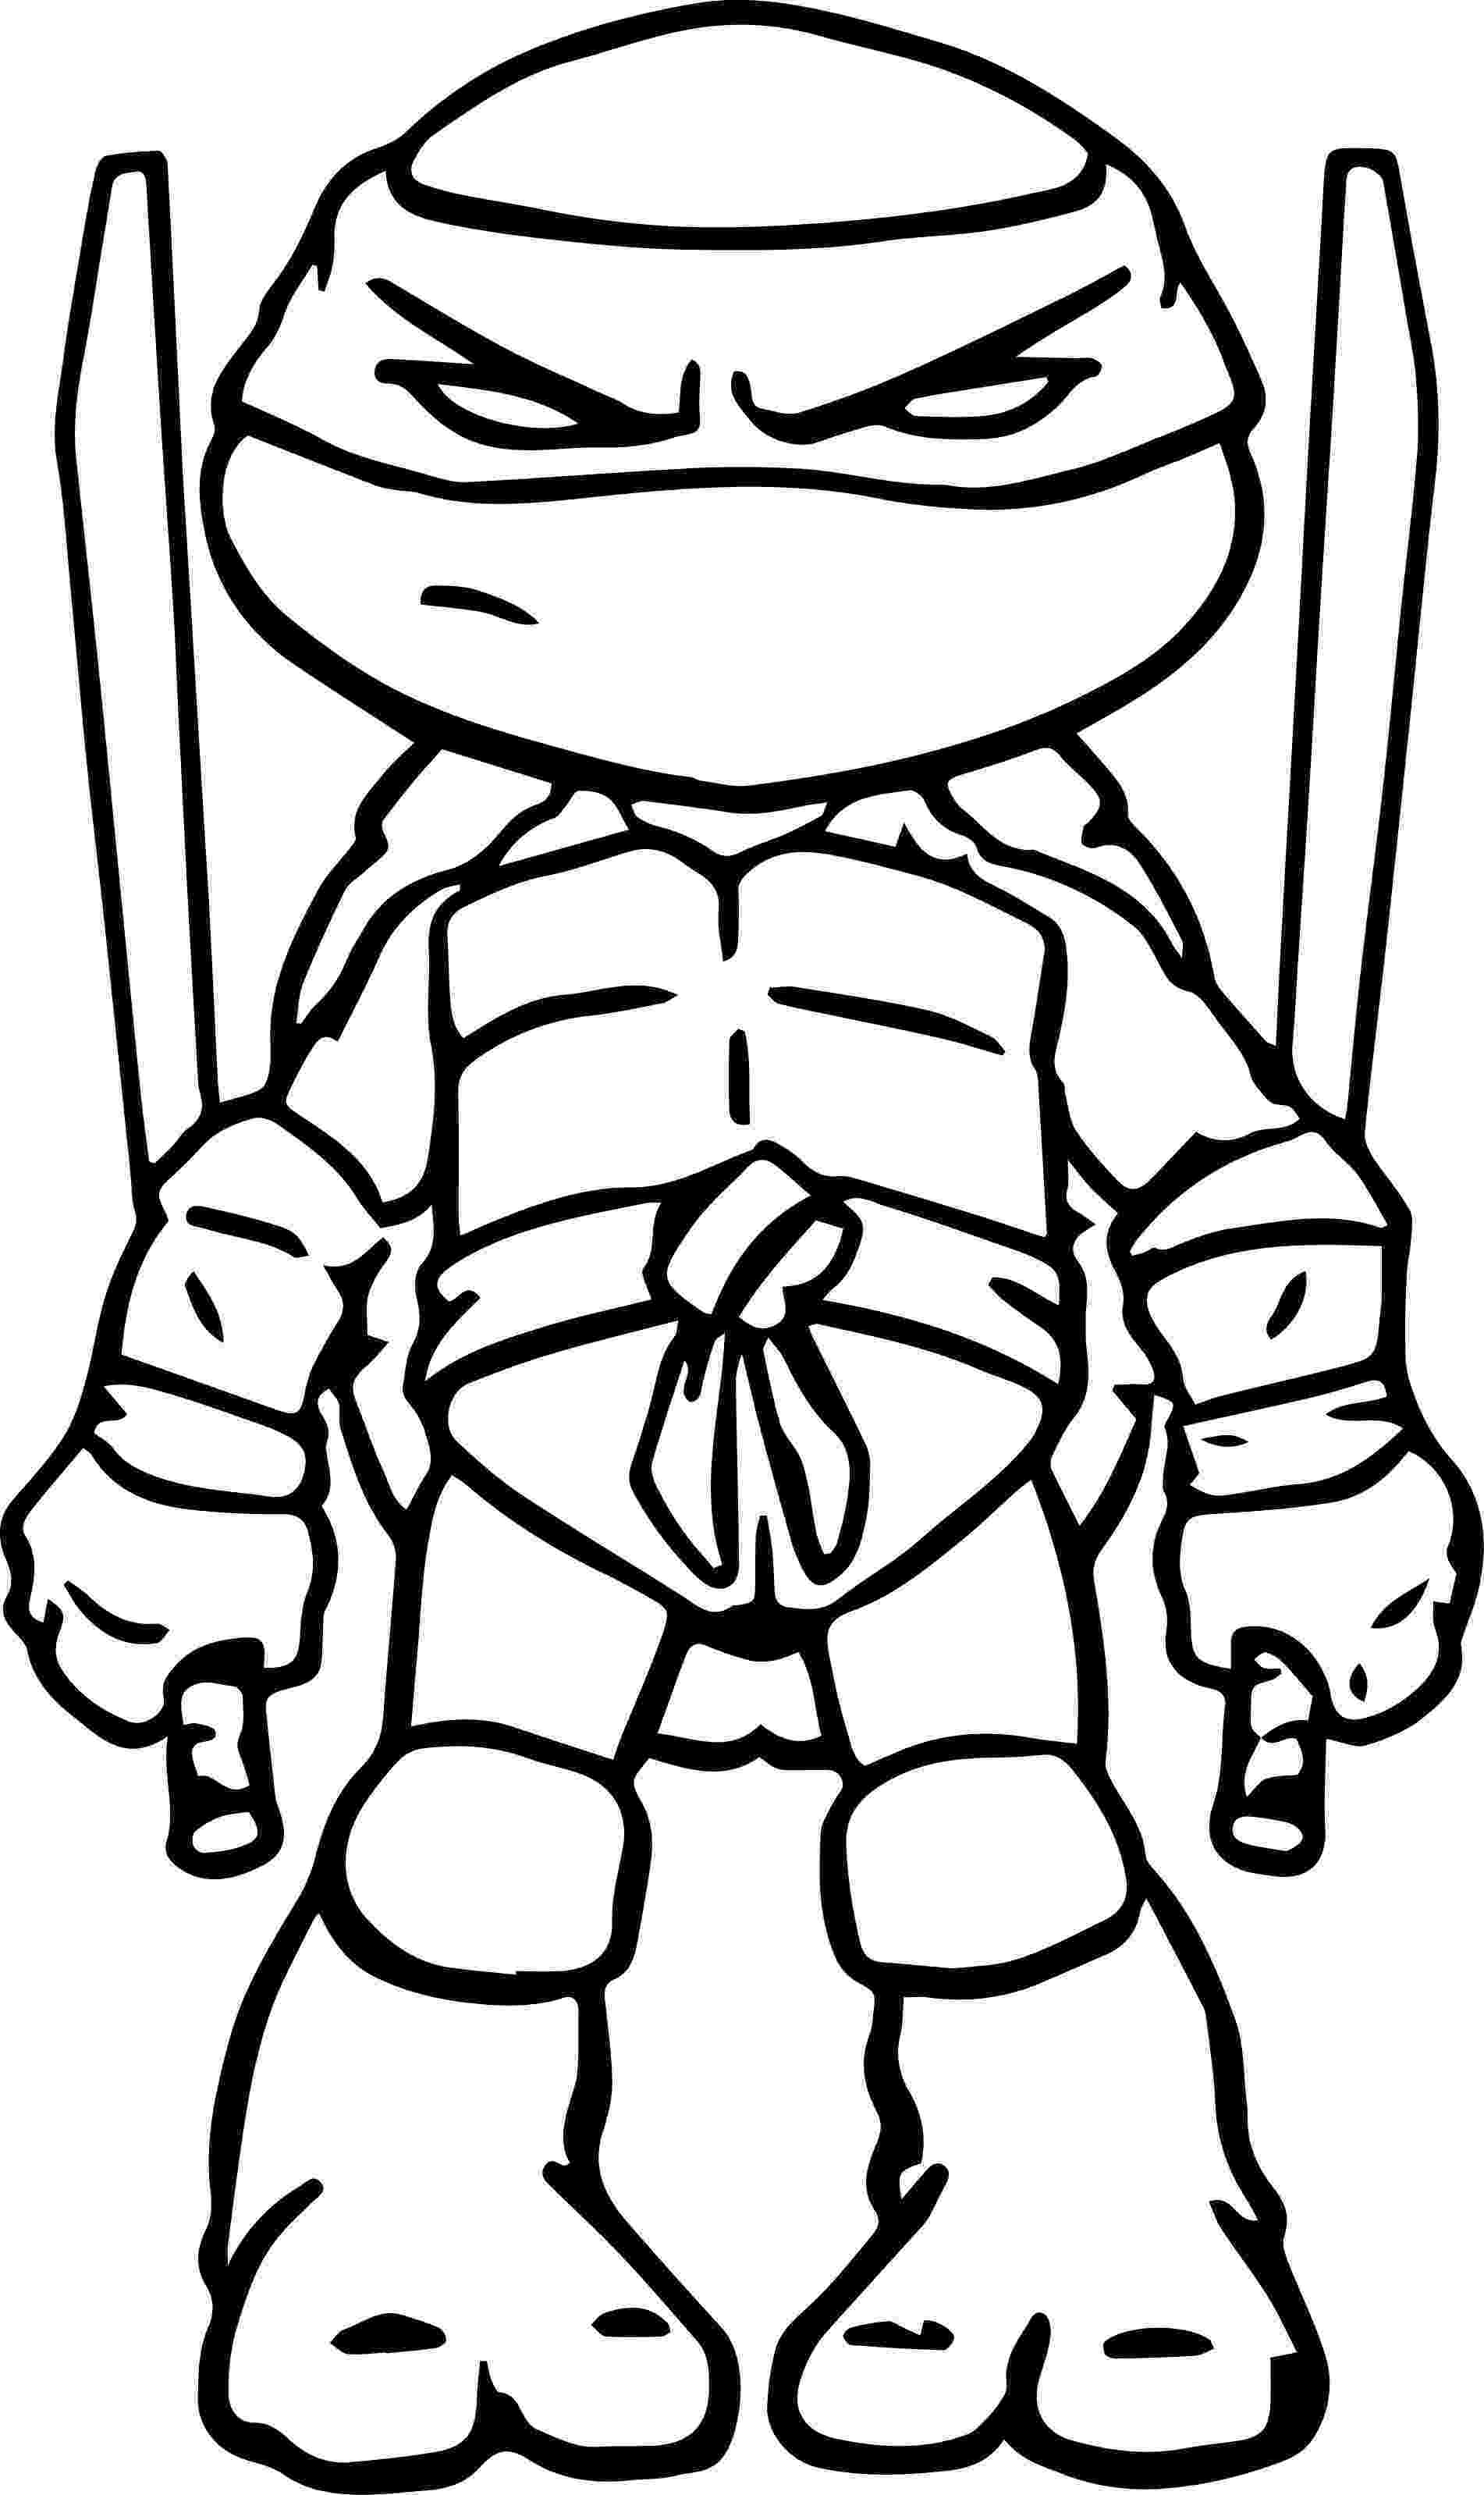 colouring pages ninja turtles fun coloring pages teenage mutant ninja turtles coloring ninja pages turtles colouring